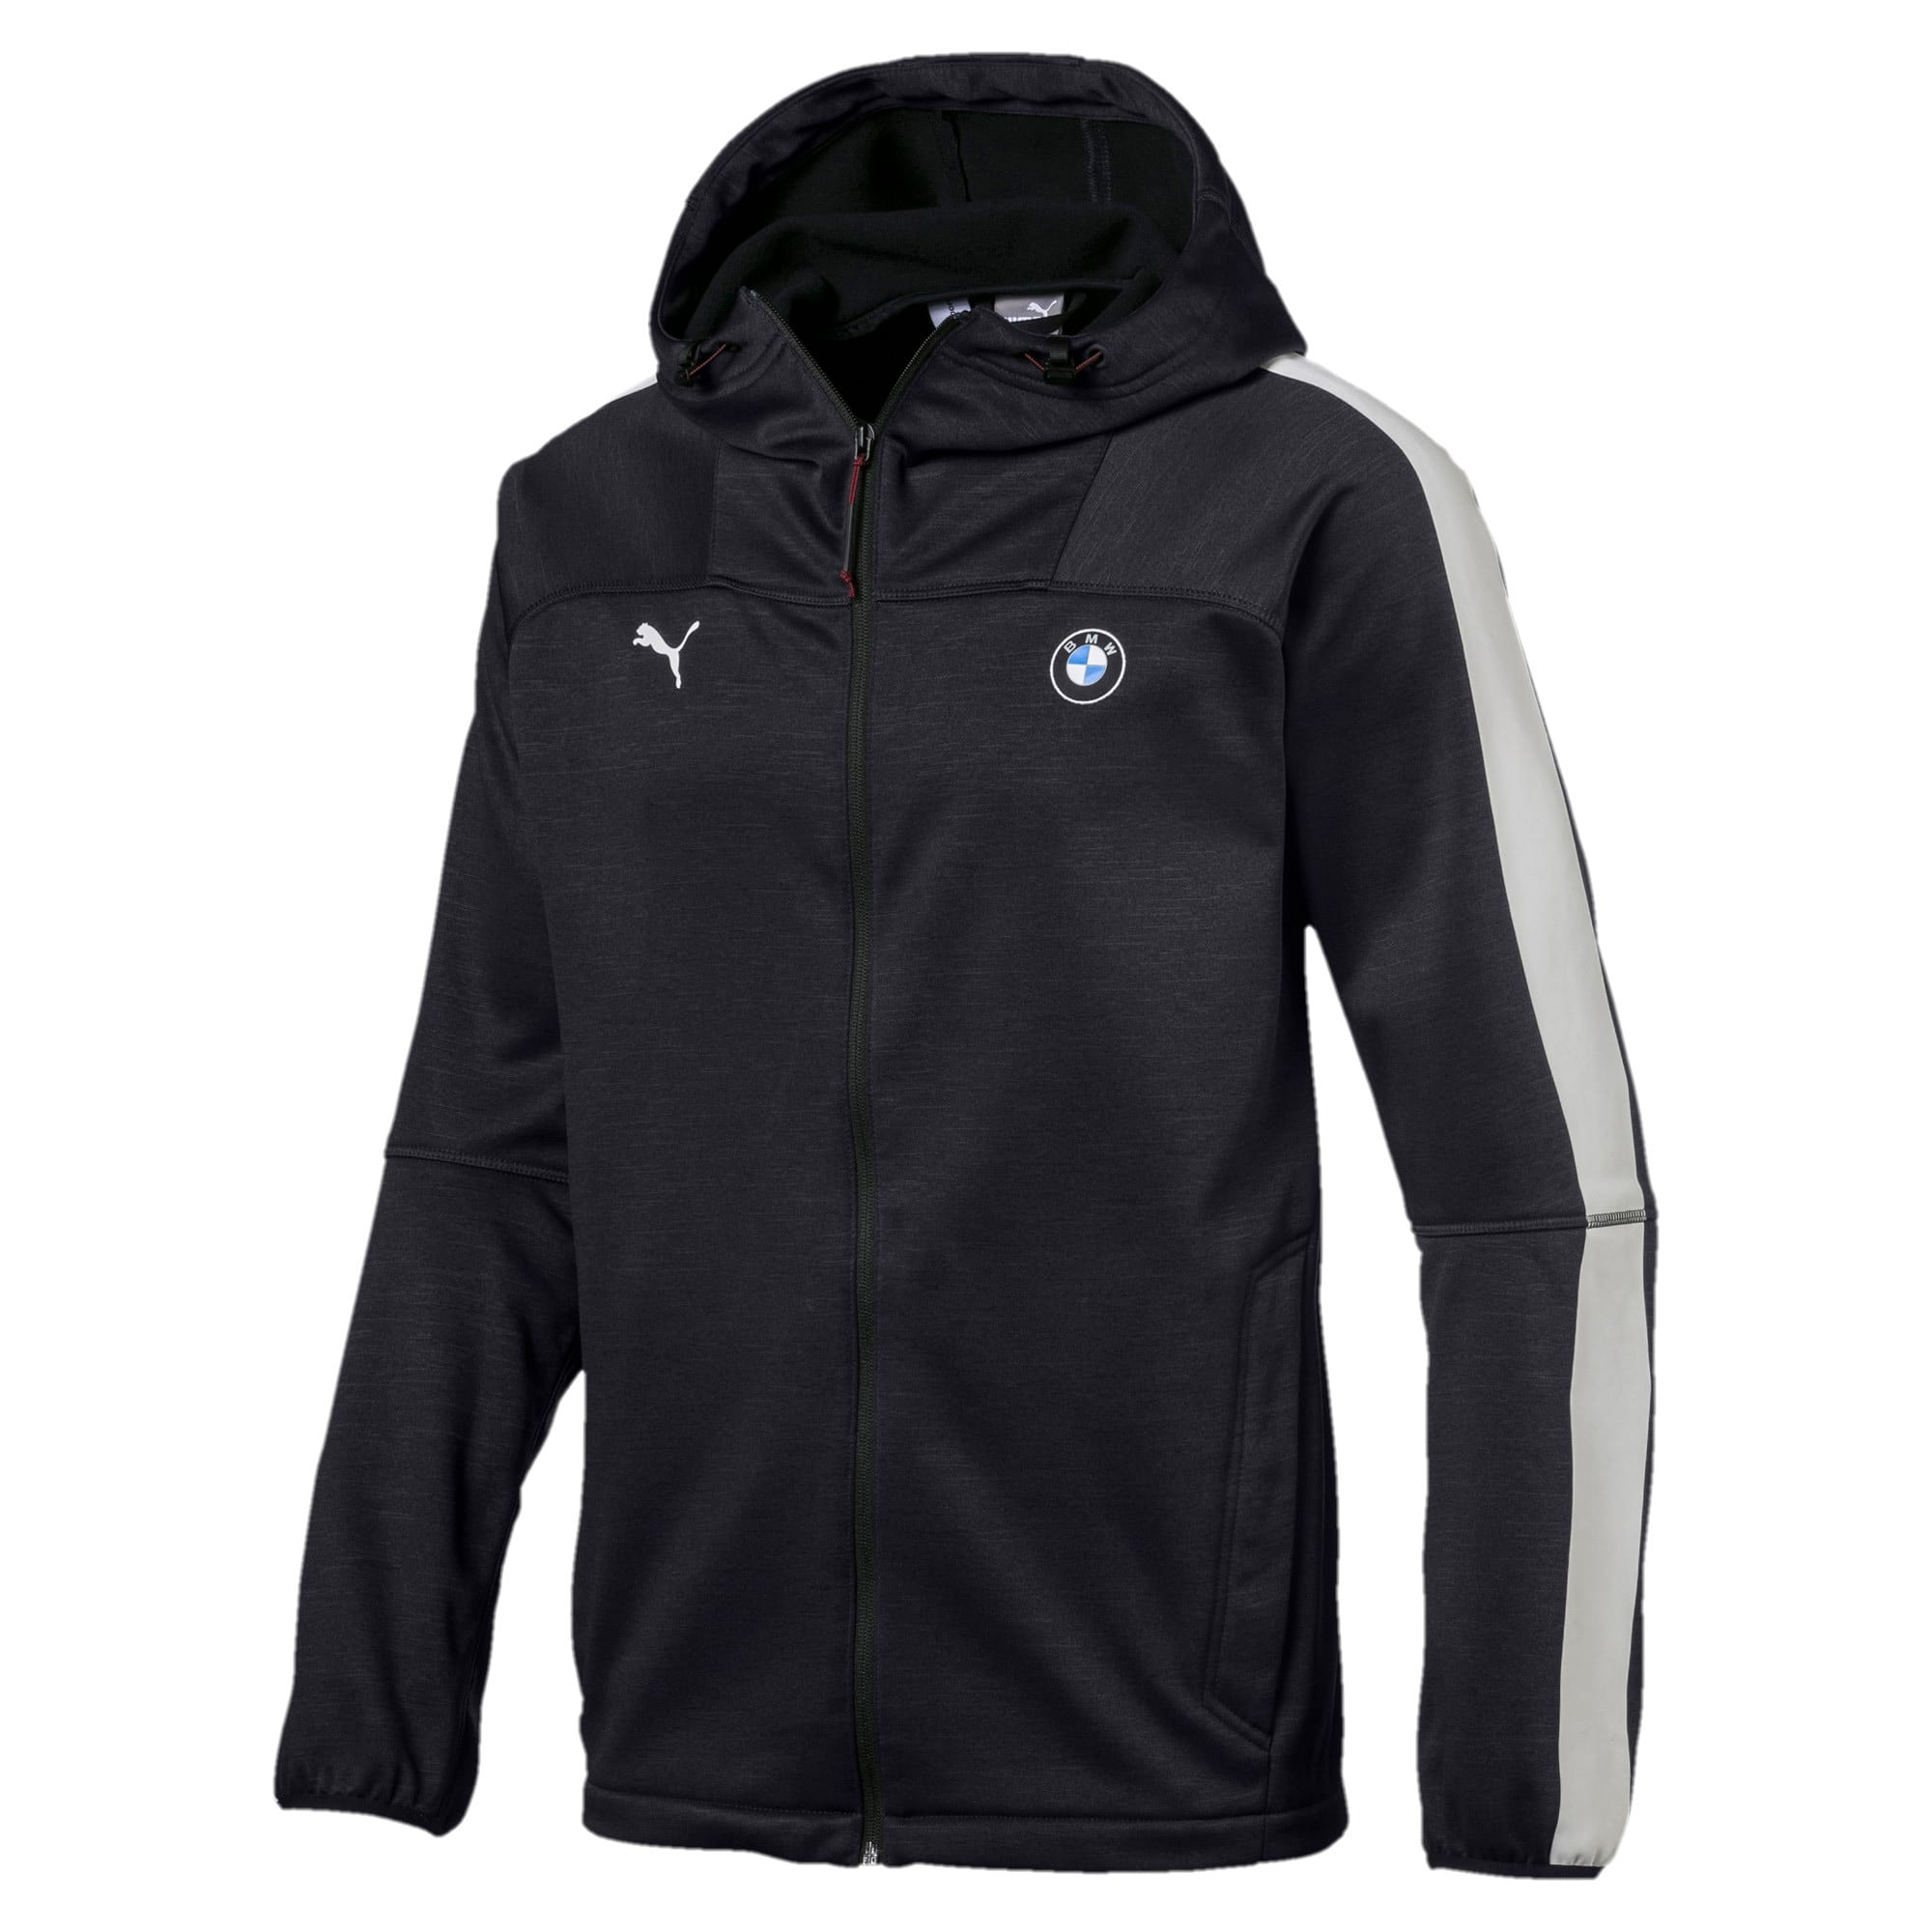 Thumbnail 1 of BMW M Motorsport Men's Life Softshell Jacket, Puma Black, medium